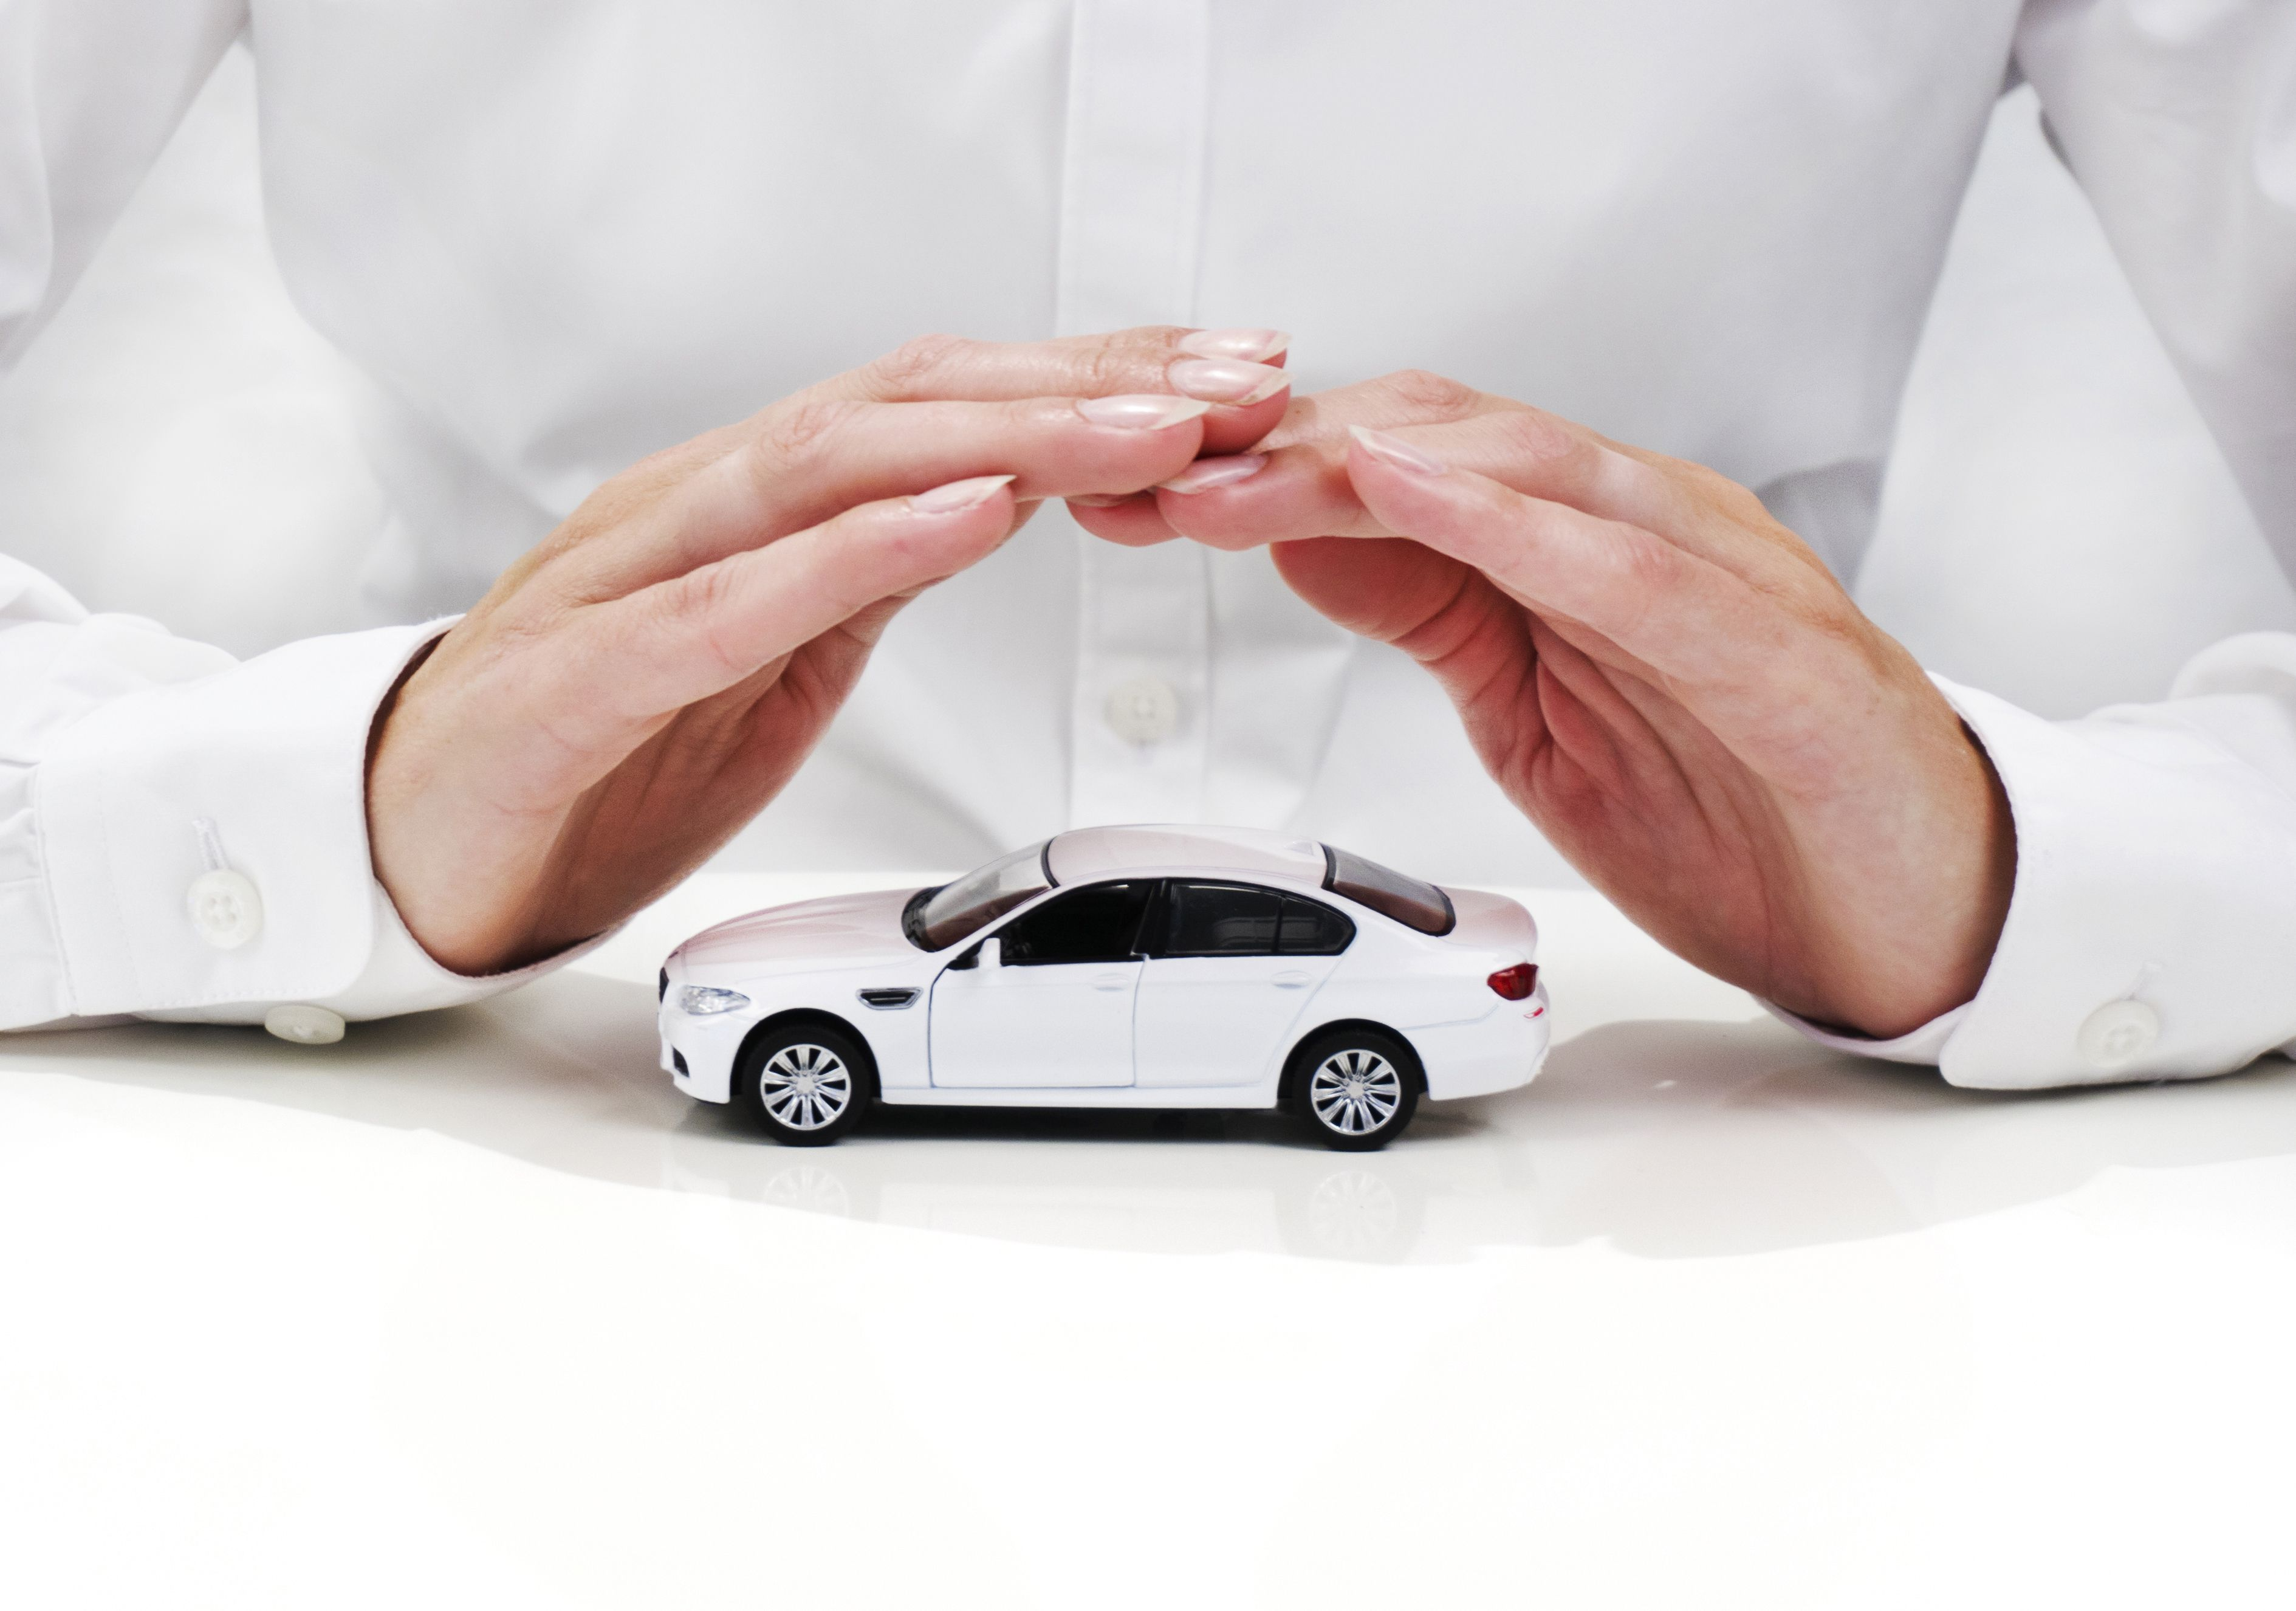 10 Things You Should Consider Before Buying Auto Insurance